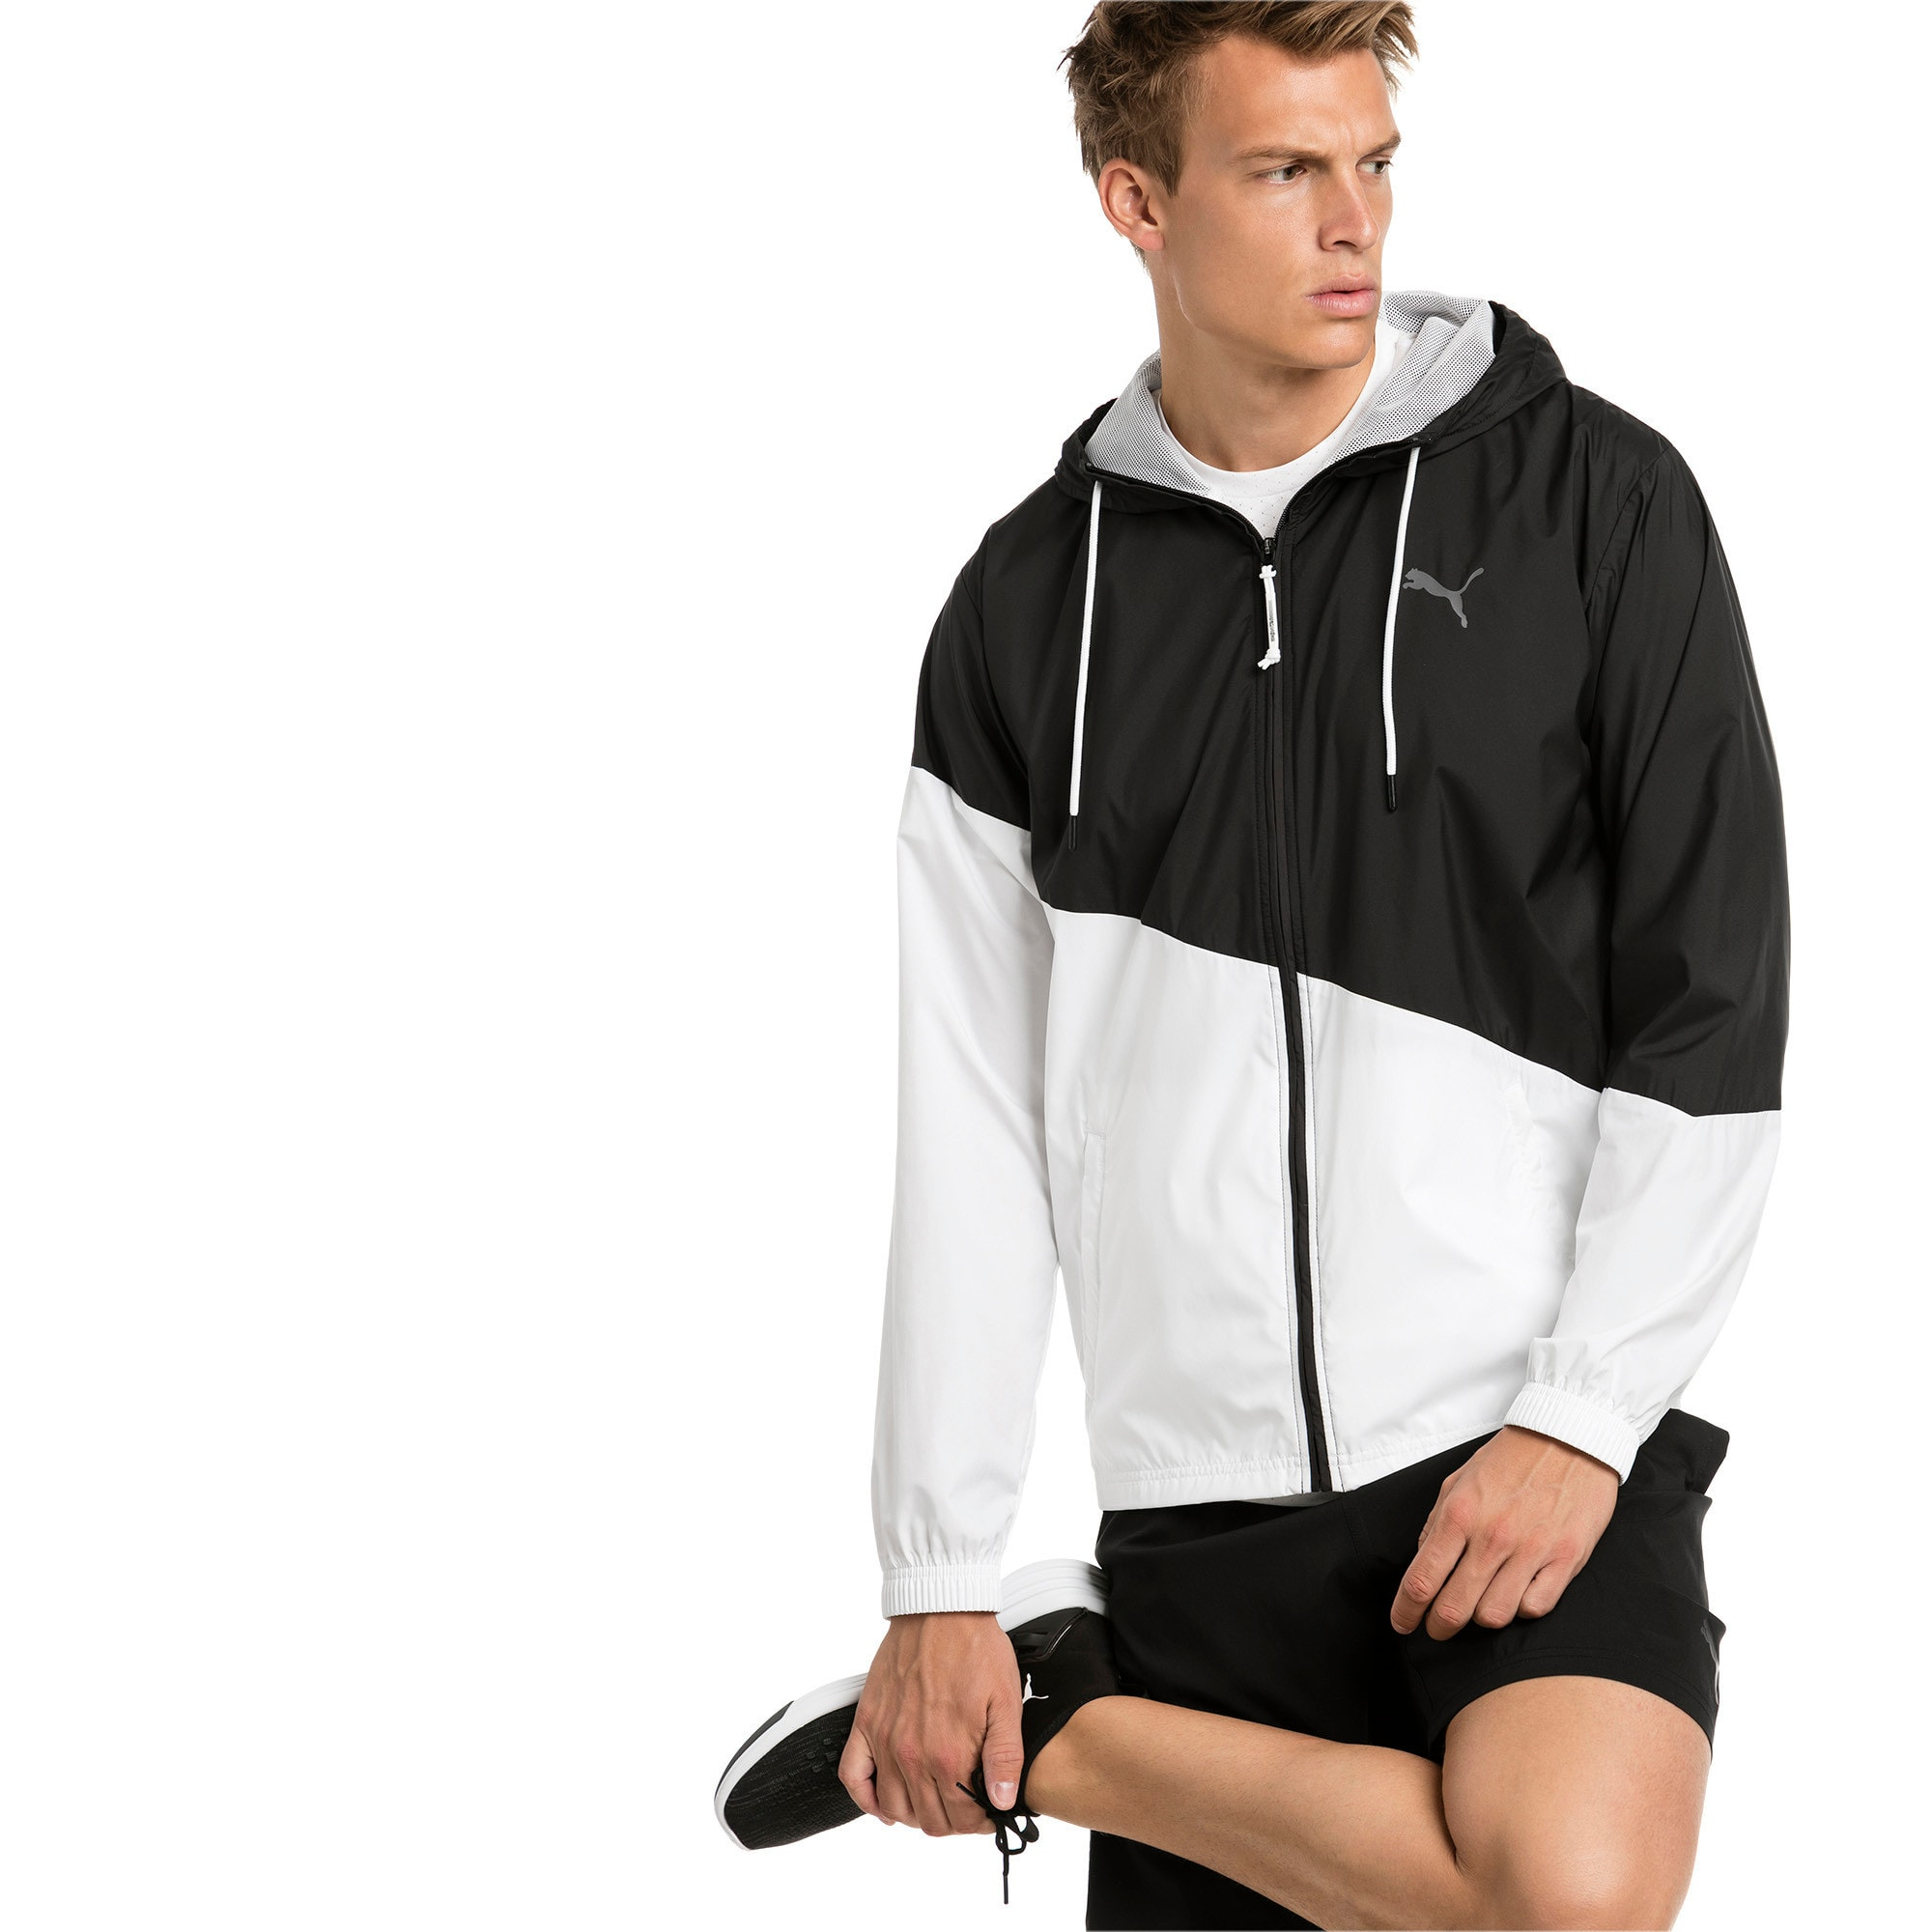 Thumbnail 1 of A.C.E. Men's Windbreaker, Puma Black-Puma White, medium